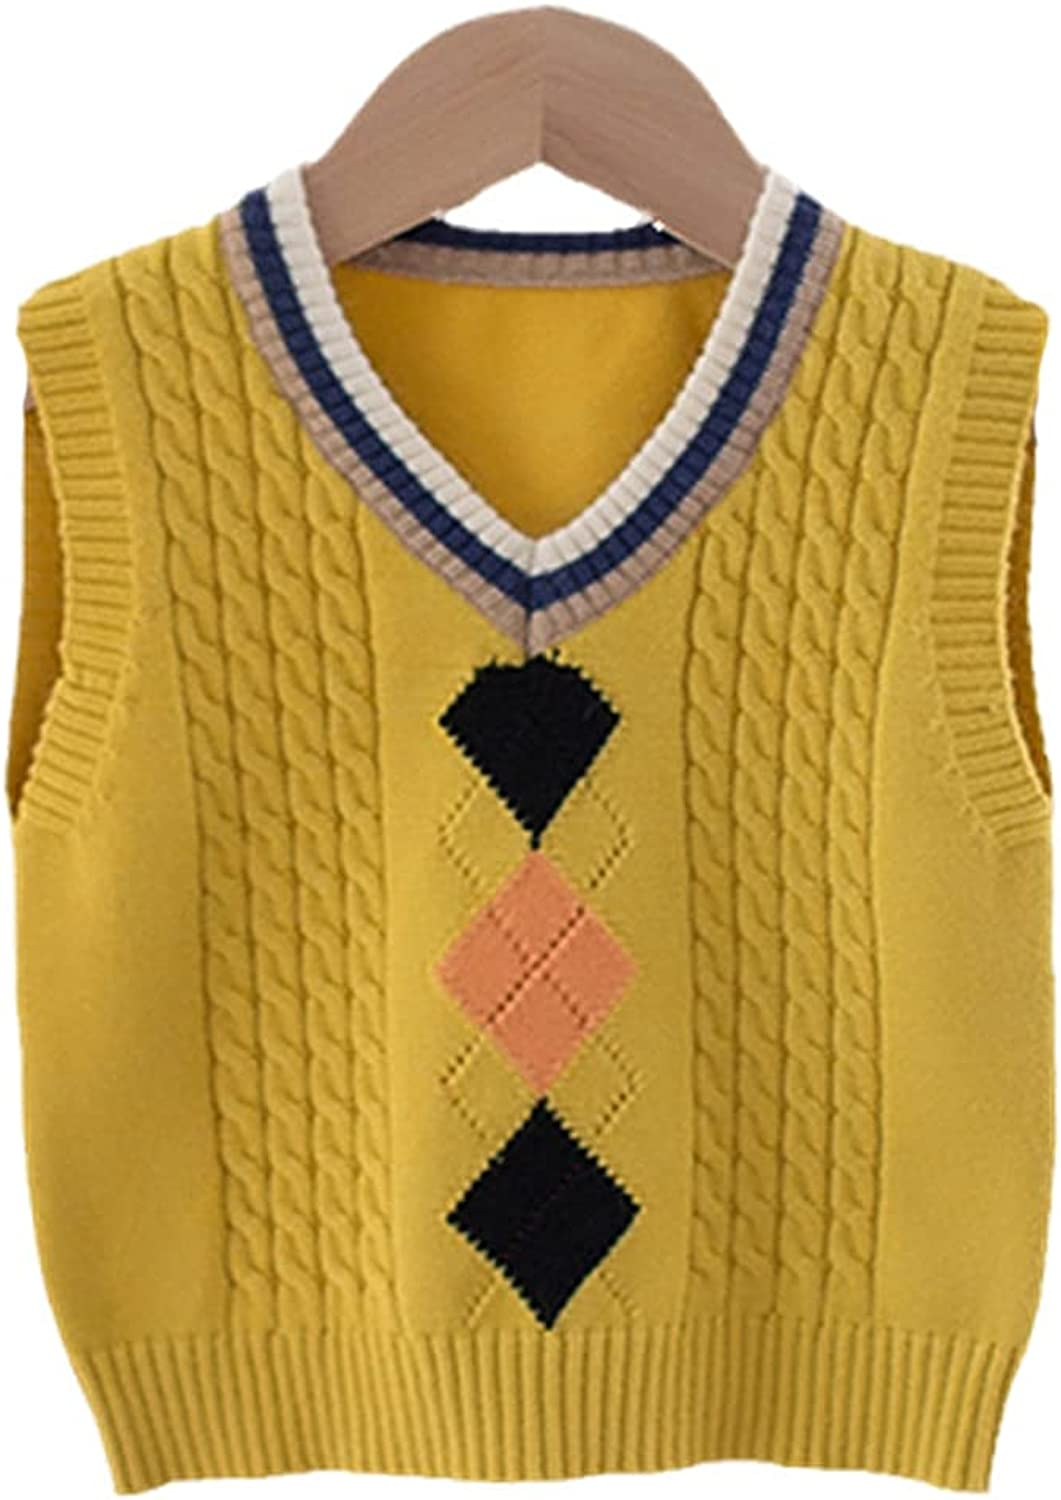 Yiqinyuan Children's Baby Vest Boys and Girls Autumn Clothes Children Korean Knitted Sweater Vest